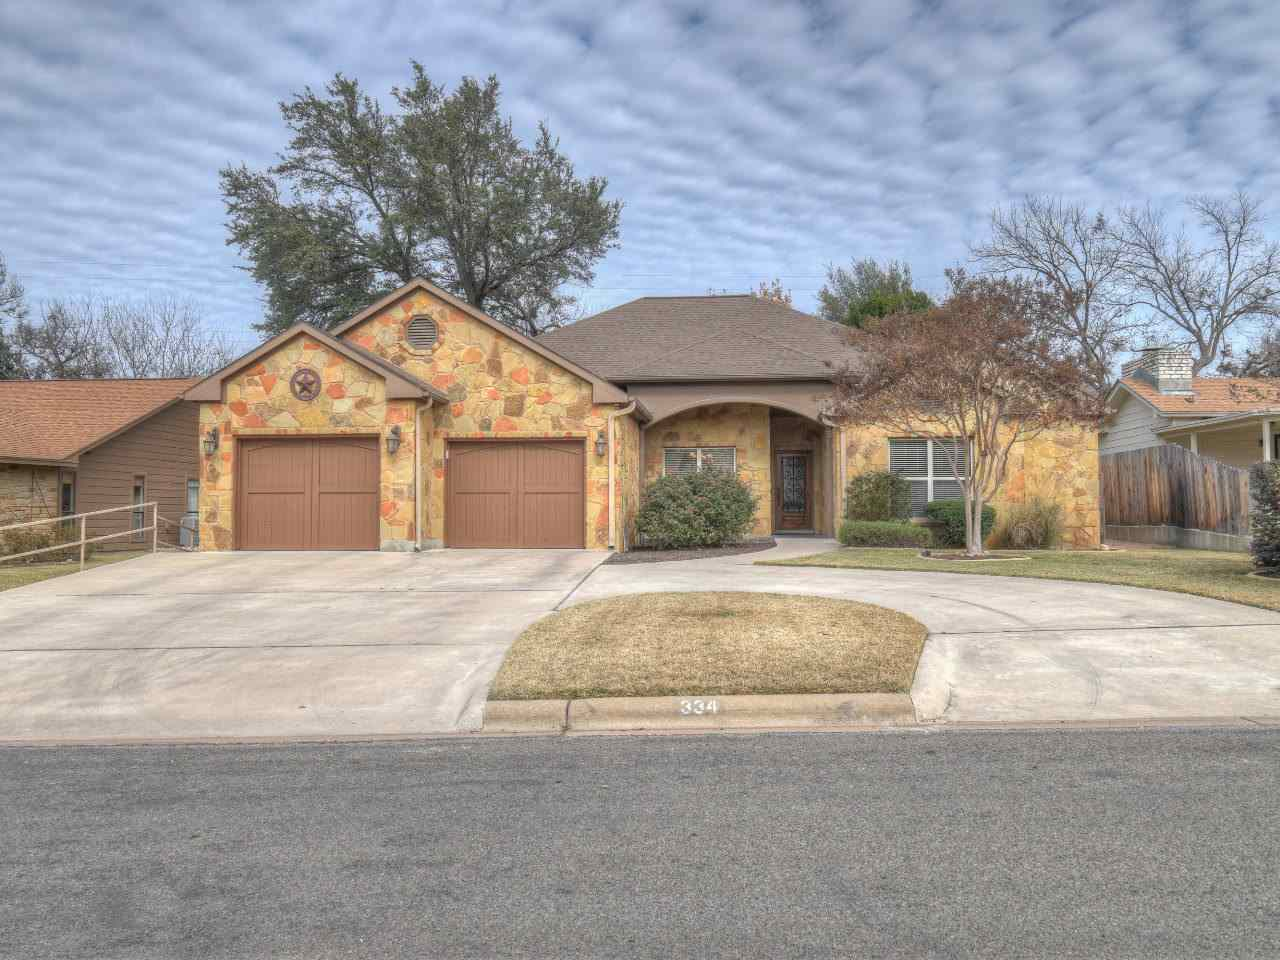 Single Family Home for Sale at 334 Stewart Street 334 Stewart Street Meadowlakes, Texas 78654 United States